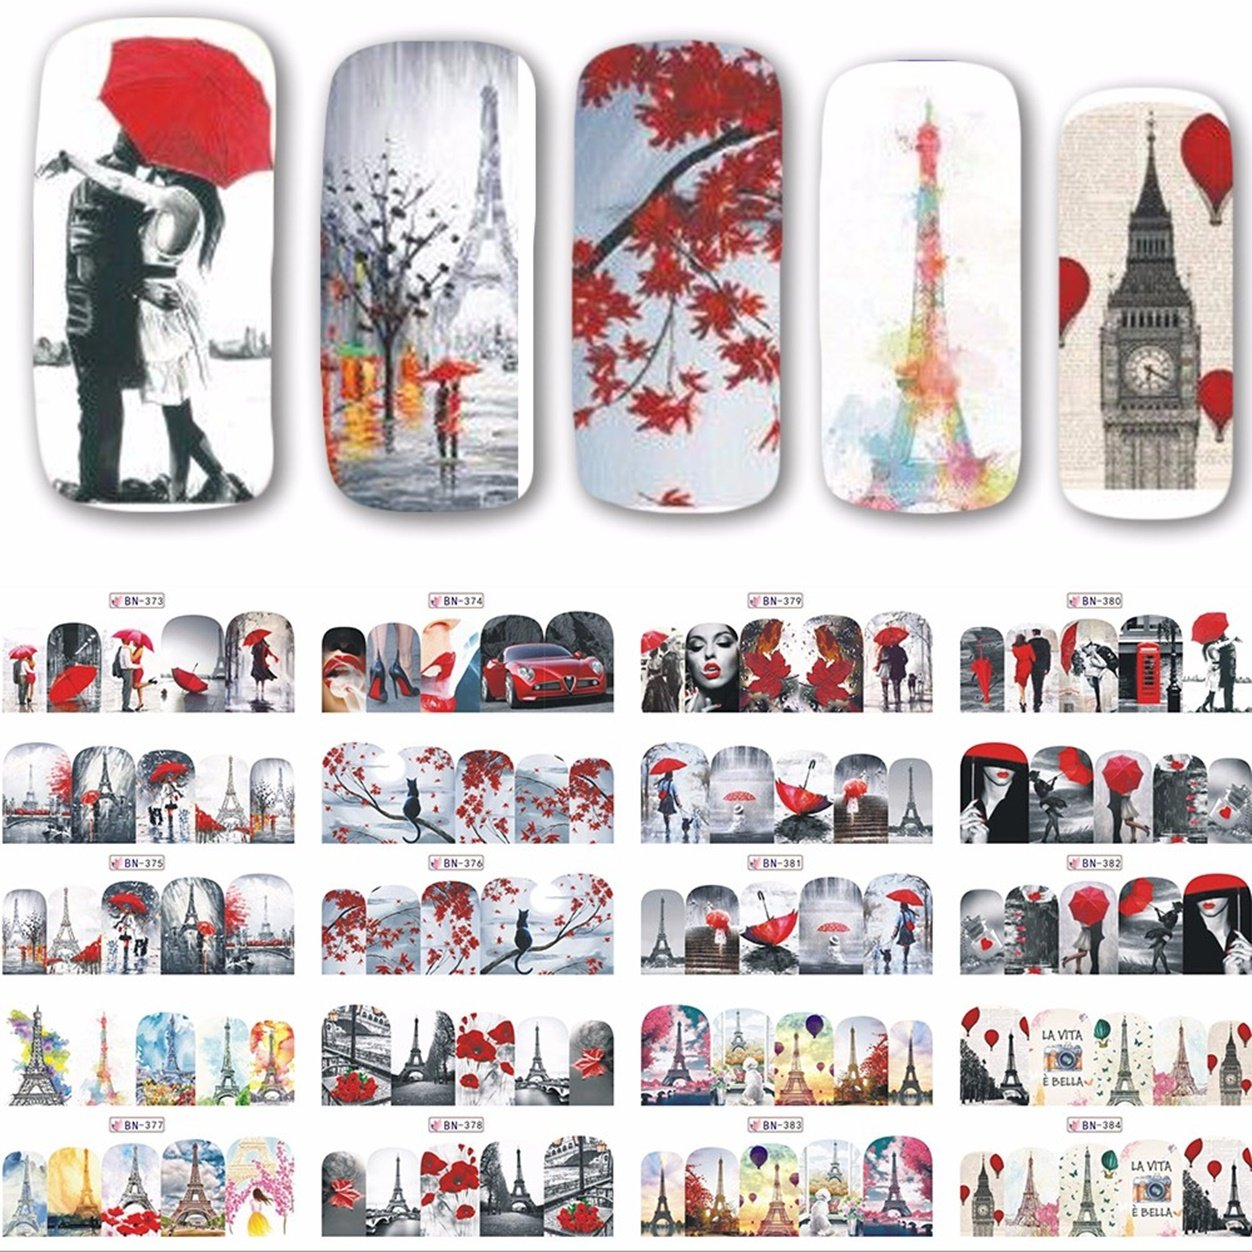 1 Sets Romantic Red Lady Nail Art Stickers Valentine Water Transfer Nails Wrap Paint Tattoos Stamp Plates Templates Tools Tips Kits Alluring Popular Christmas Holidays Stick Tool Vinyls Decals Kit